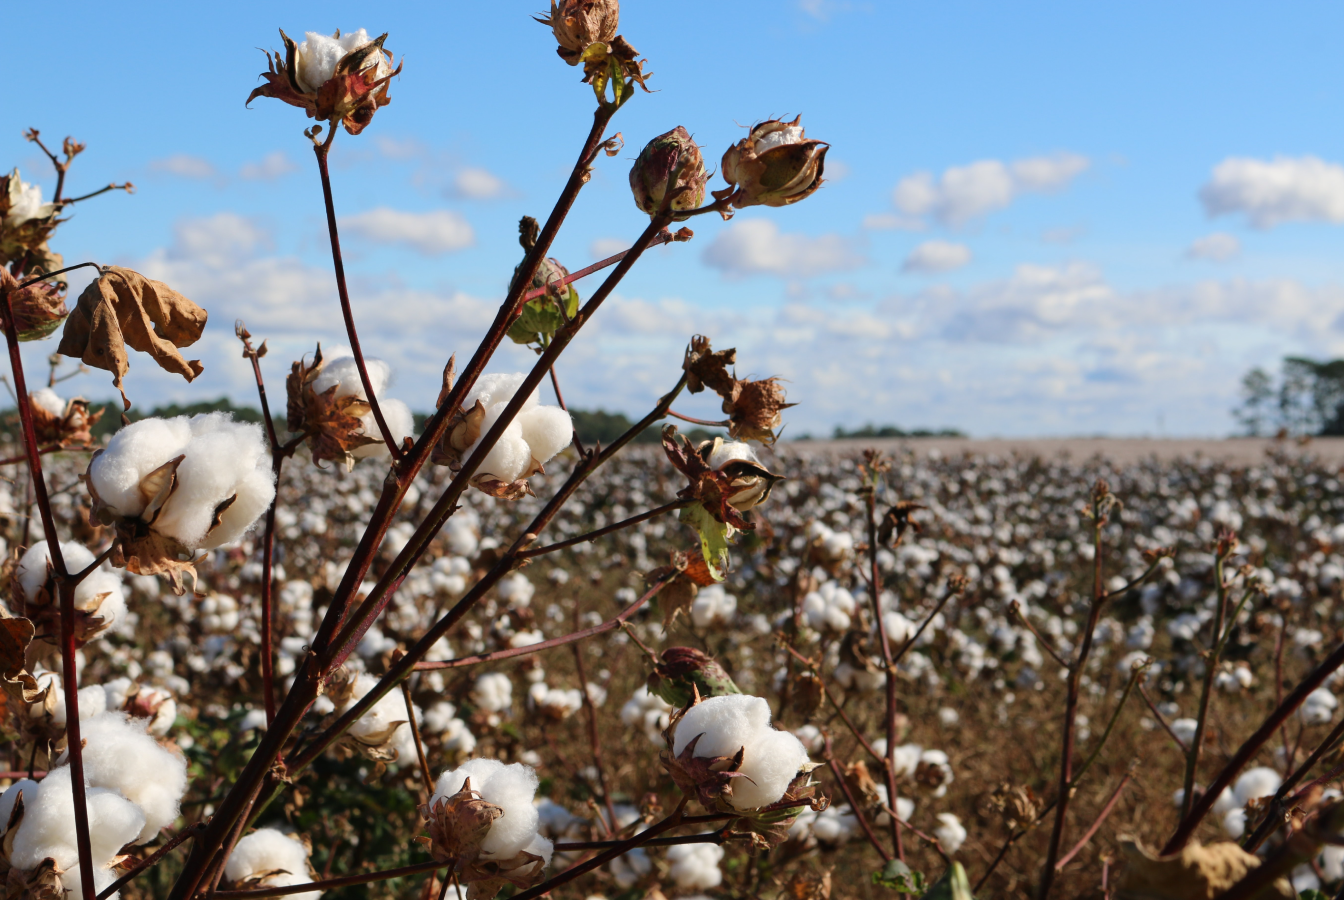 Field of cotton with boles ready to harvest